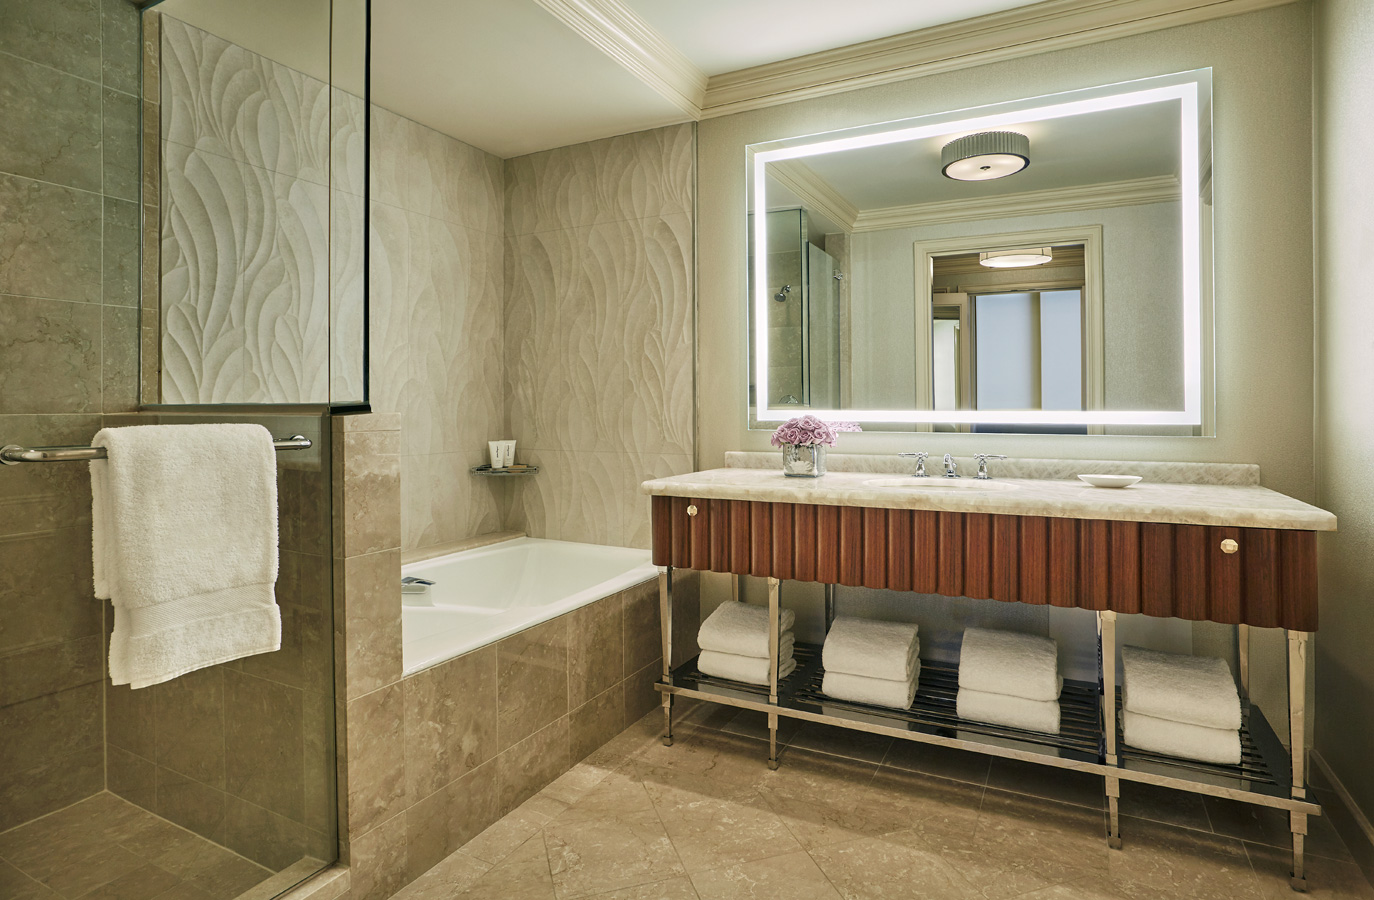 Renovated hotel guest bathroom at the Four Seasons hotel